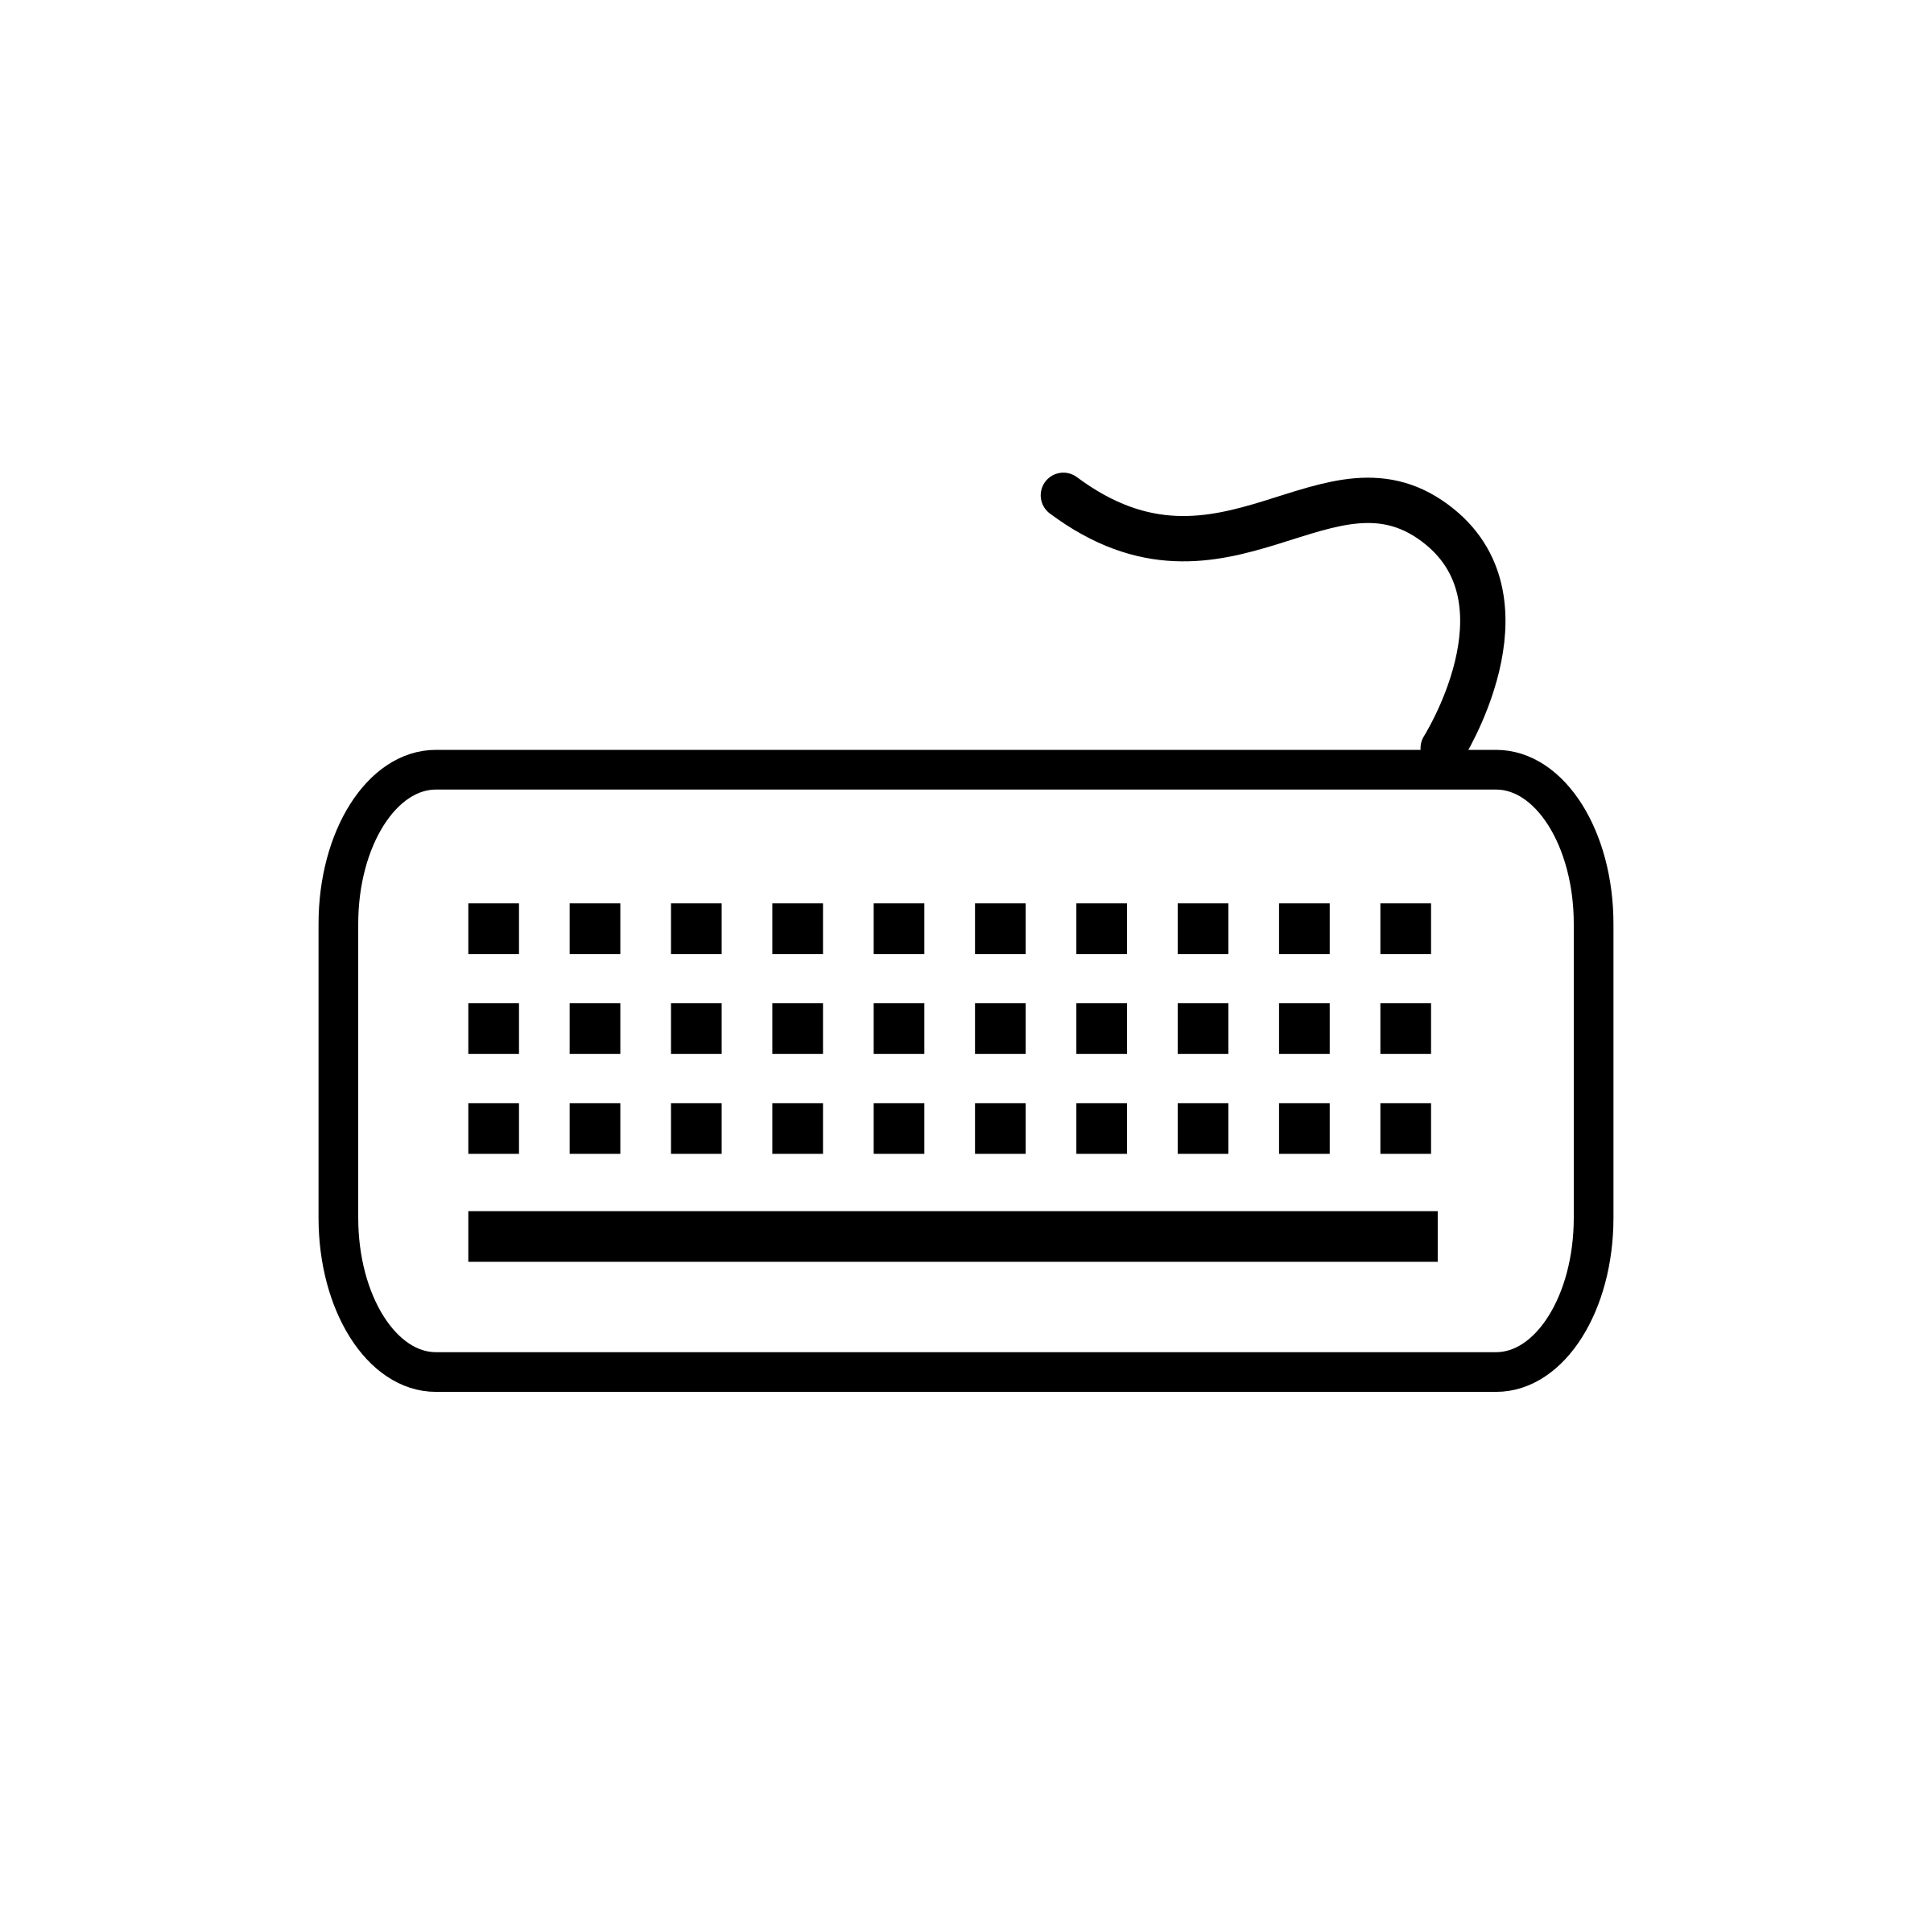 image transparent Keyboard clipart. Icon big image png.